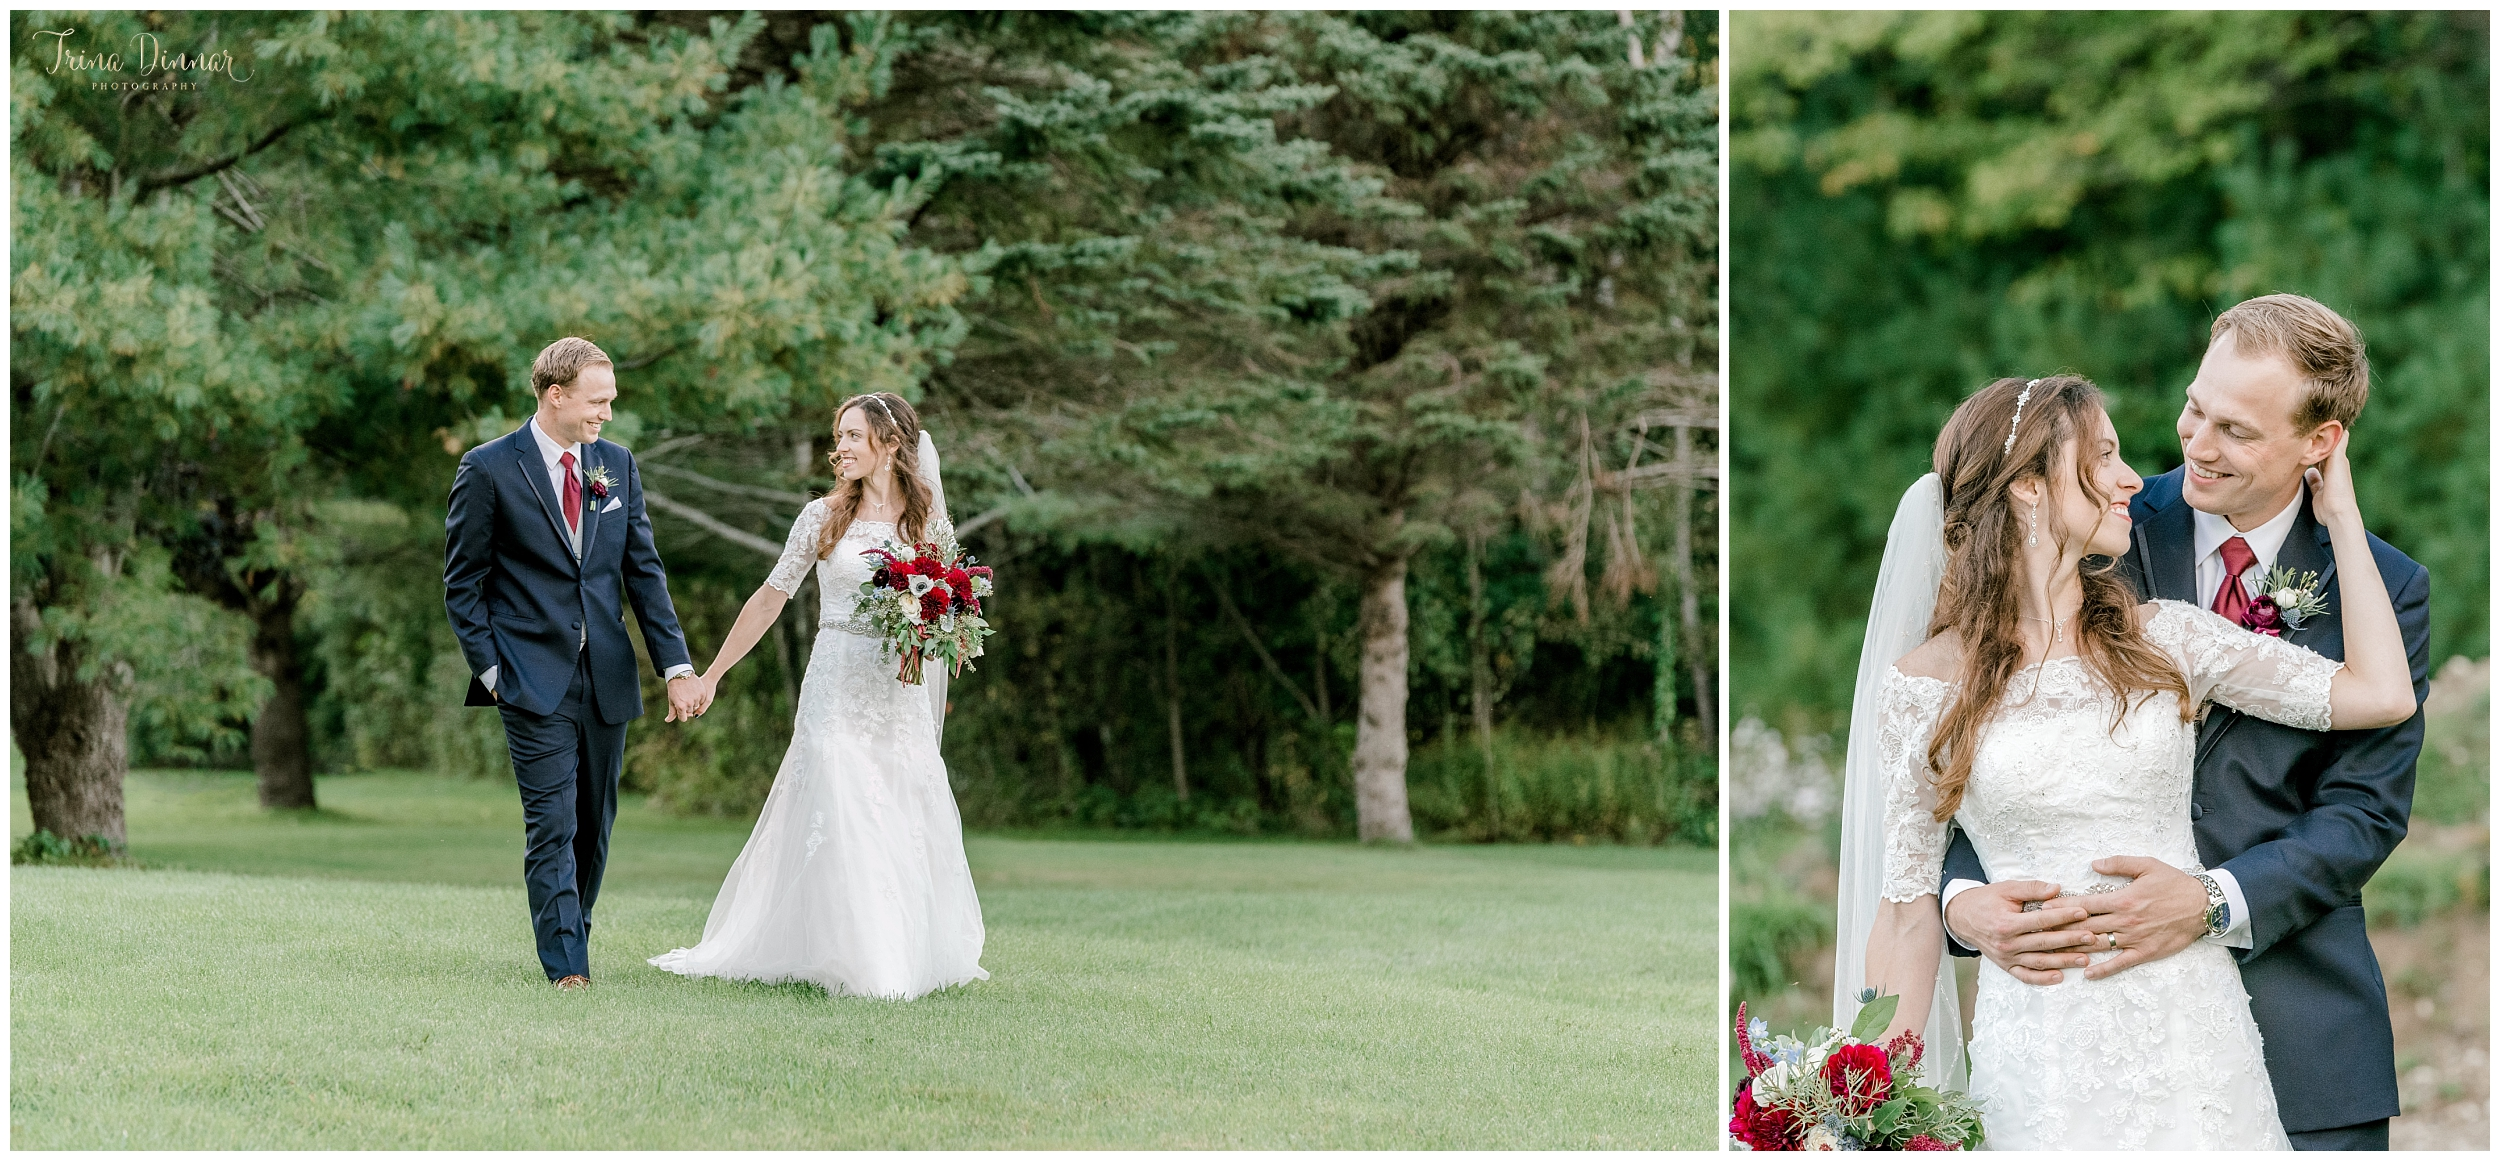 Jennifer and Michael's' Wedding day photography in Biddeford, ME